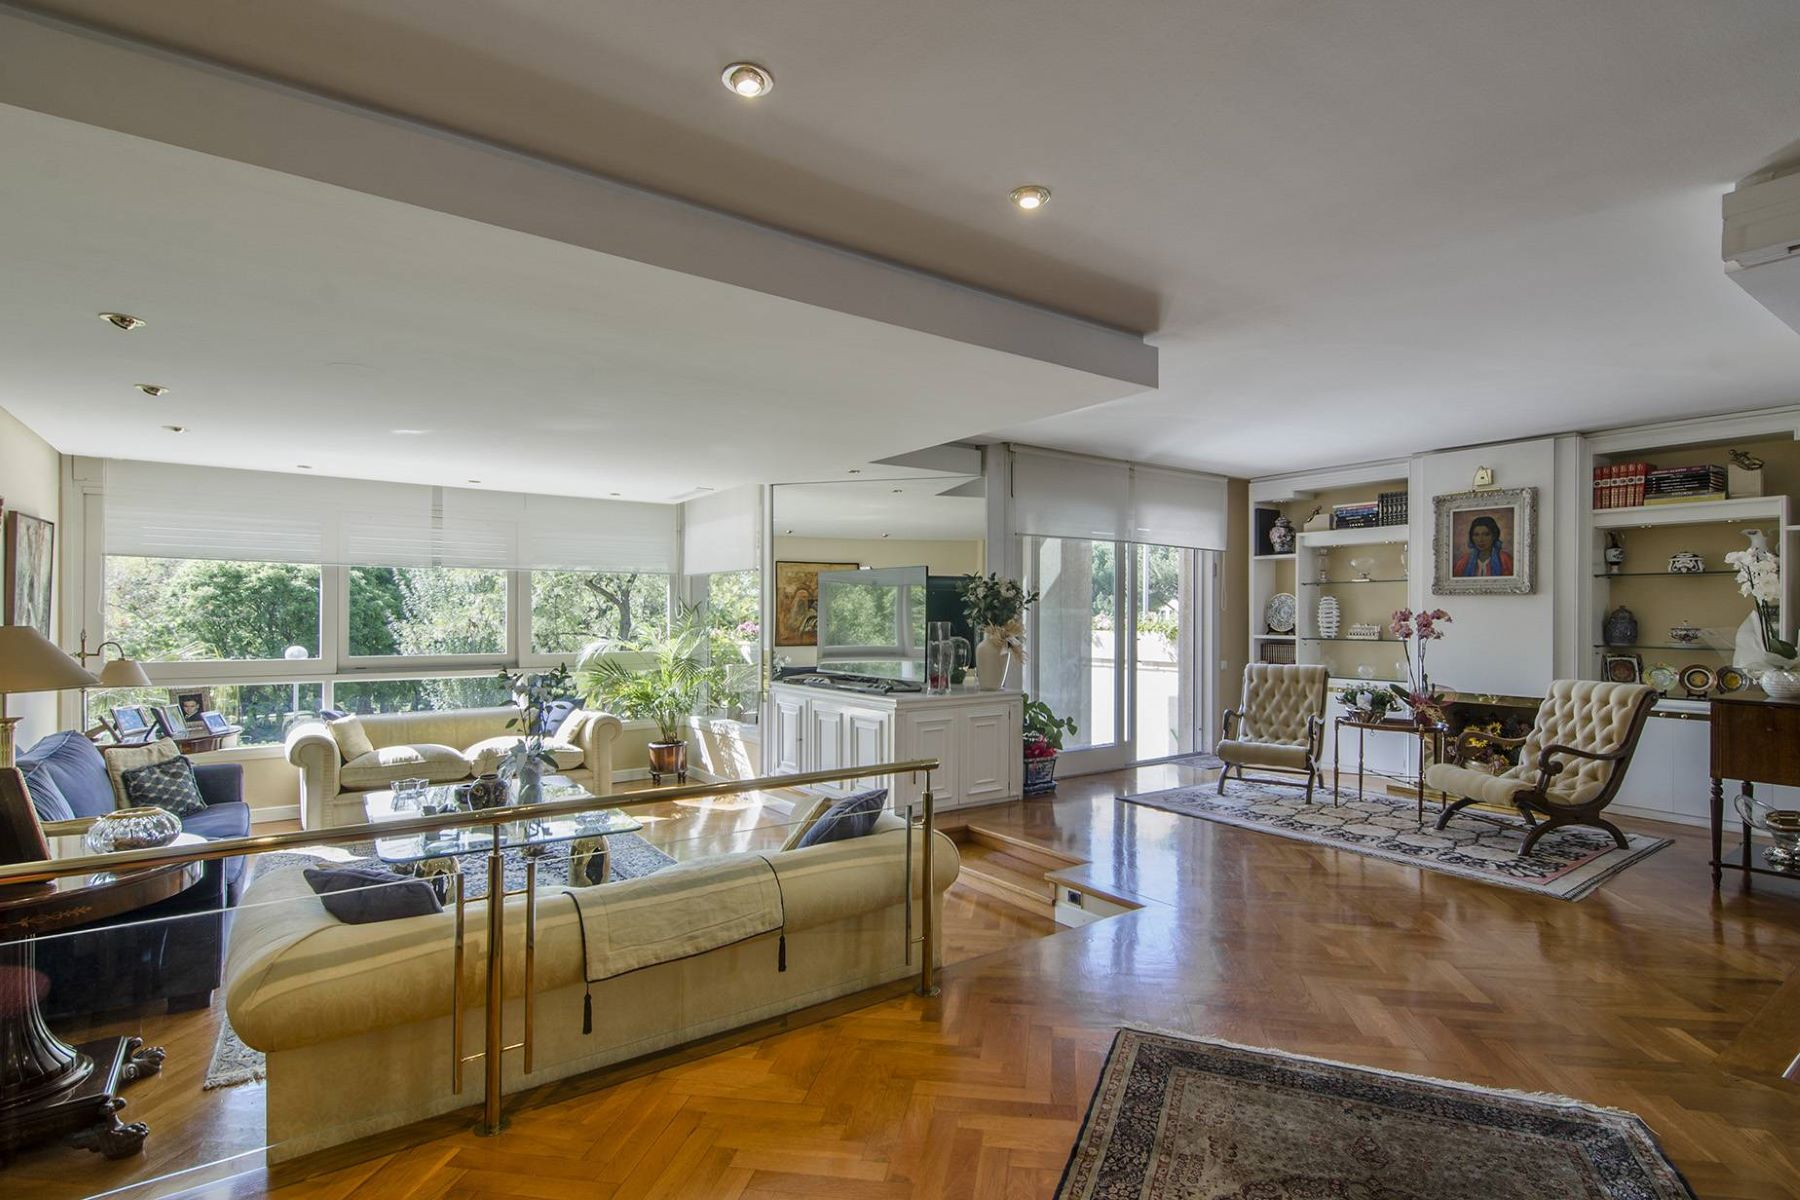 Apartment for Sale at Magnificent Duplex in Pedralbes Barcelona City, Barcelona, 08034 Spain